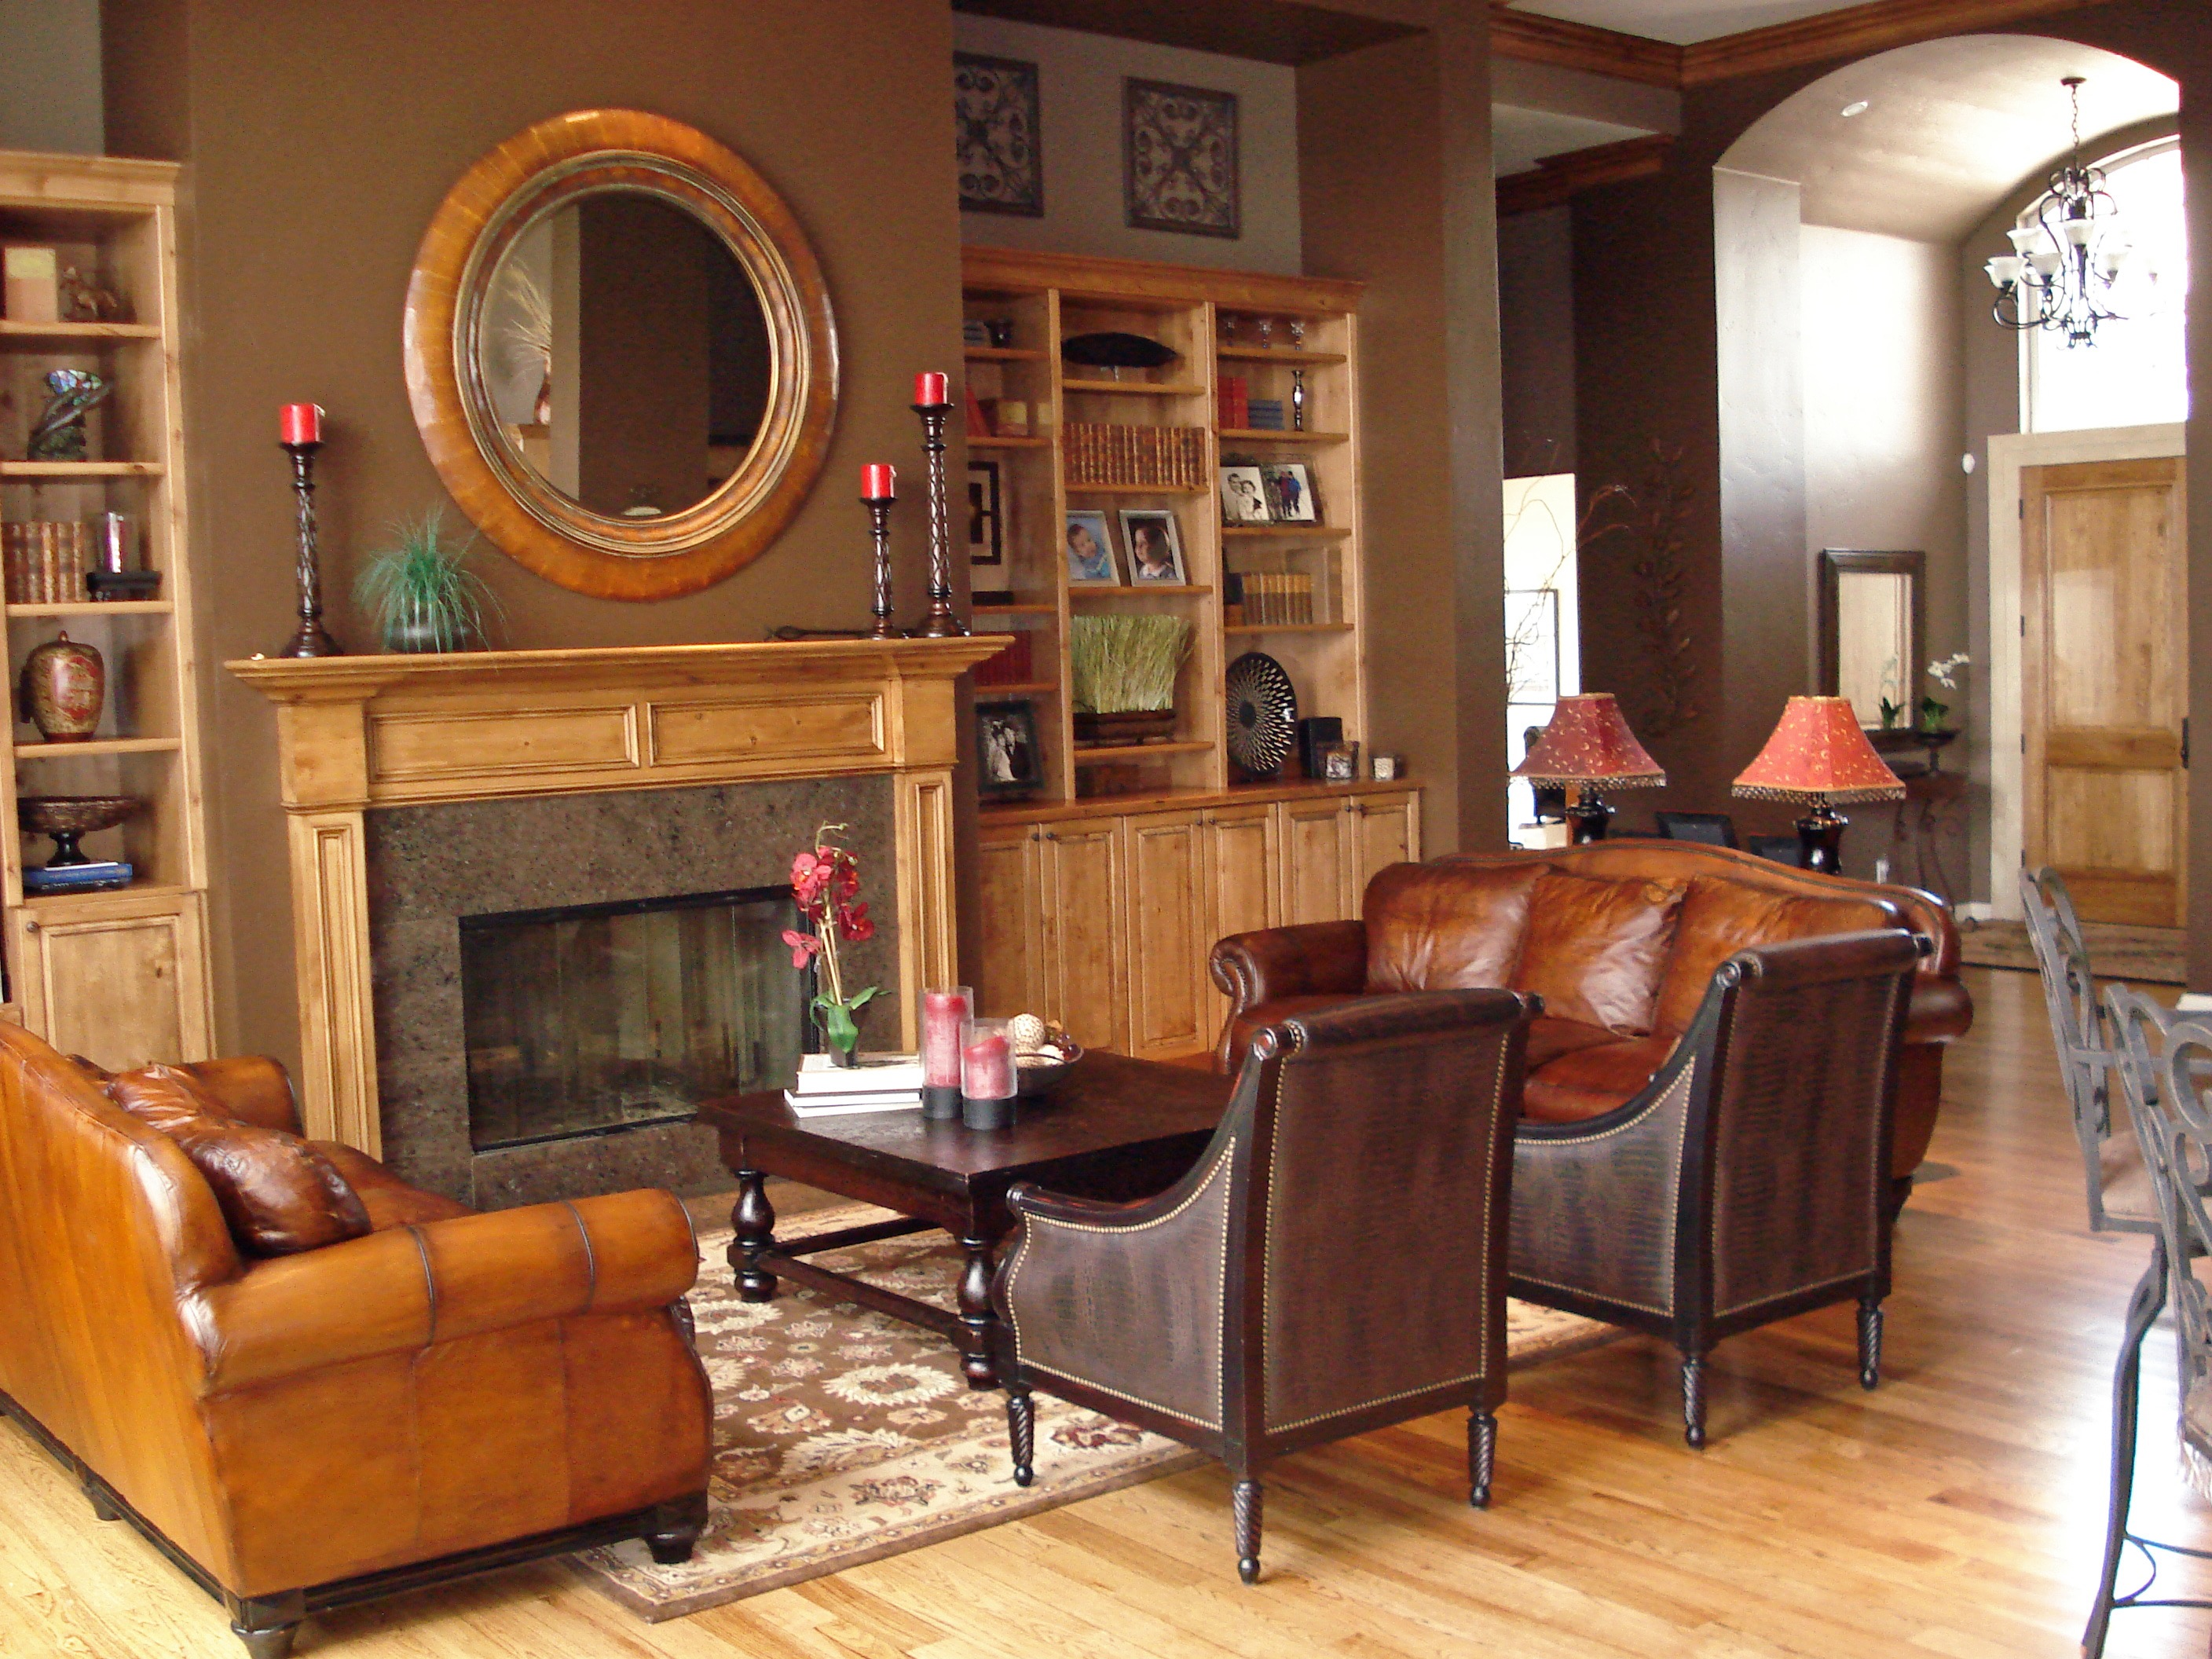 Victorian Living Room Blends Wood And Leather (Image 13 of 16)